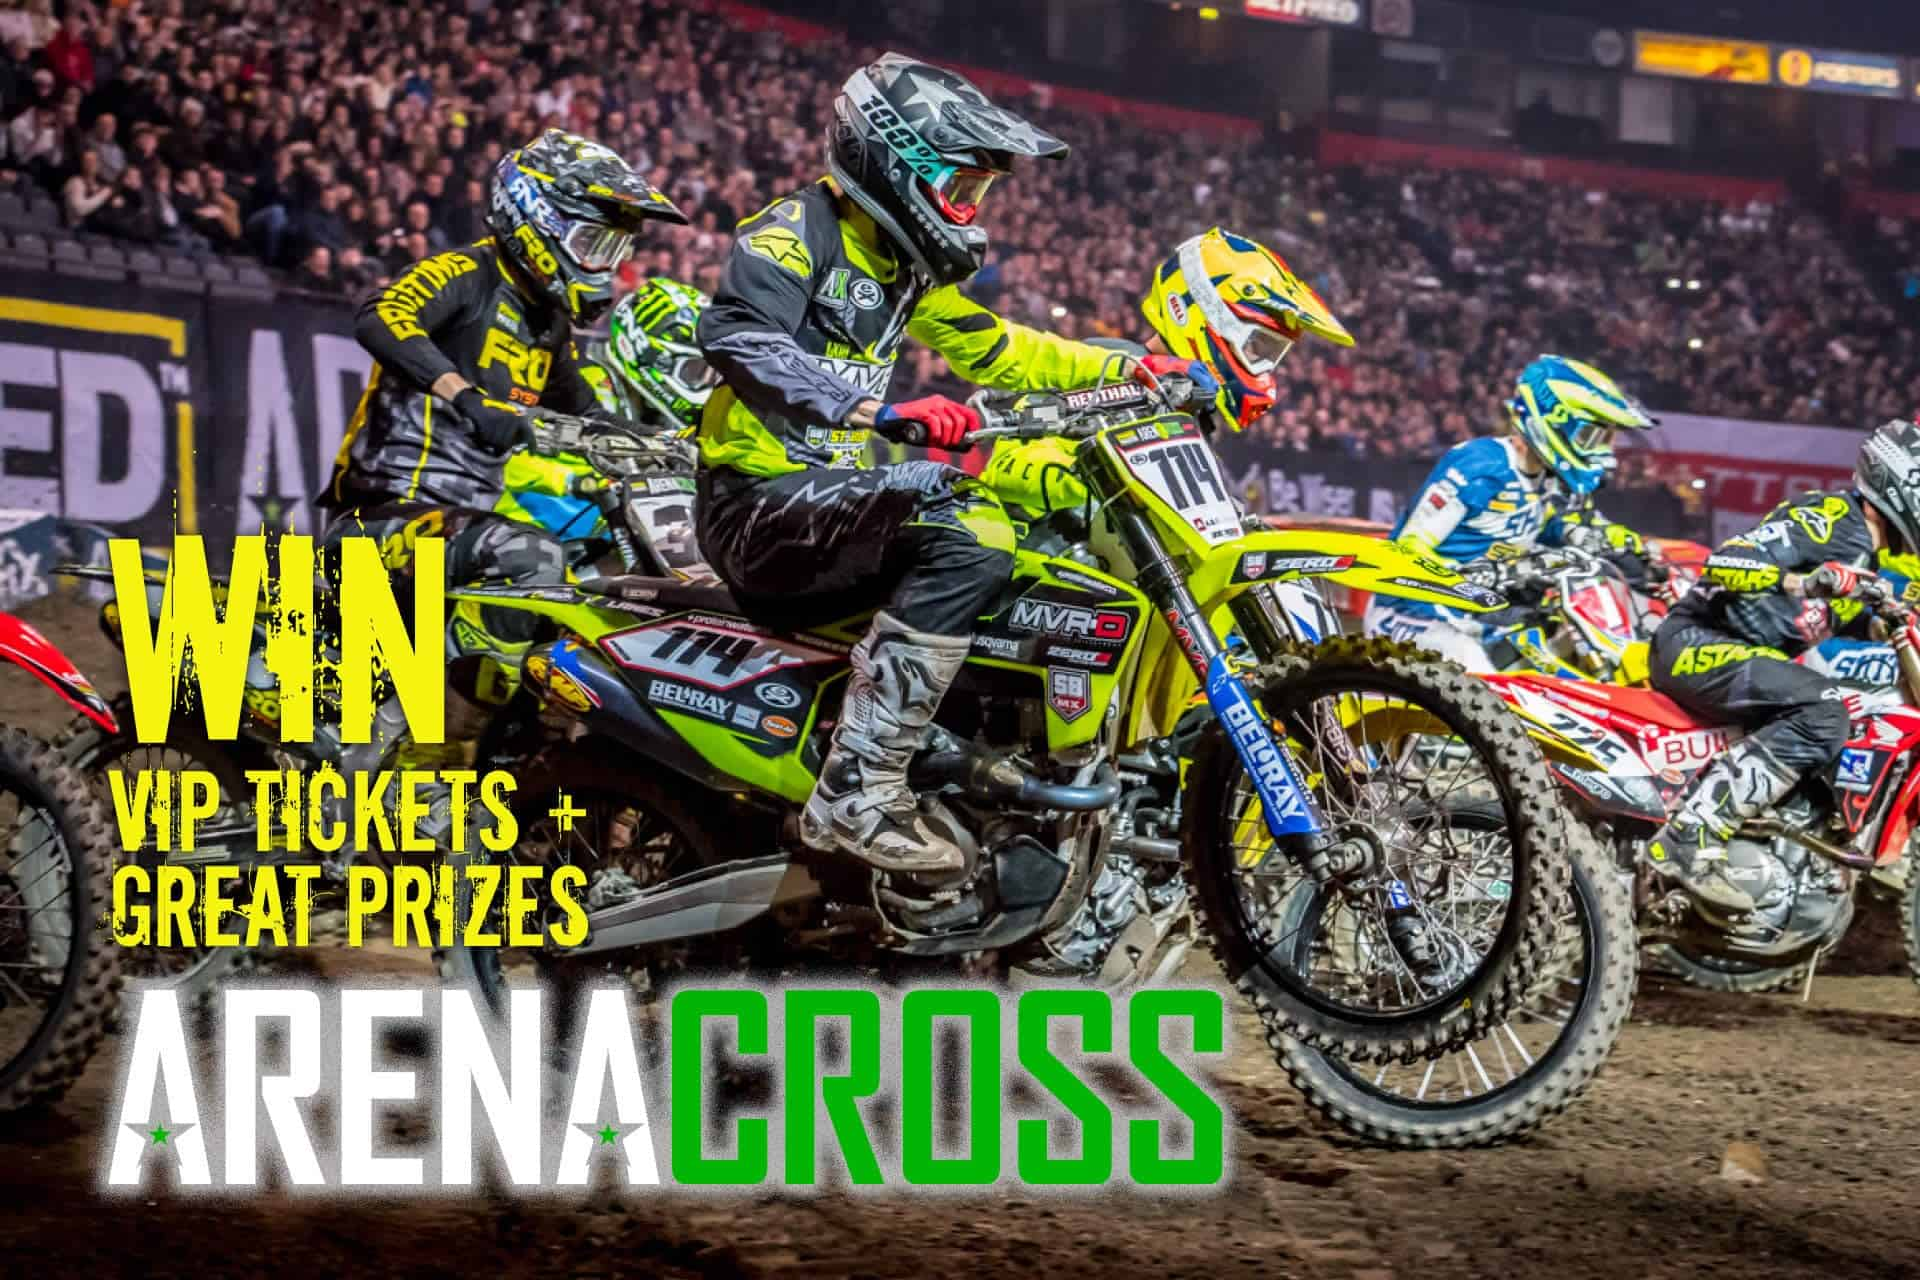 arenacross win vip tickets blog